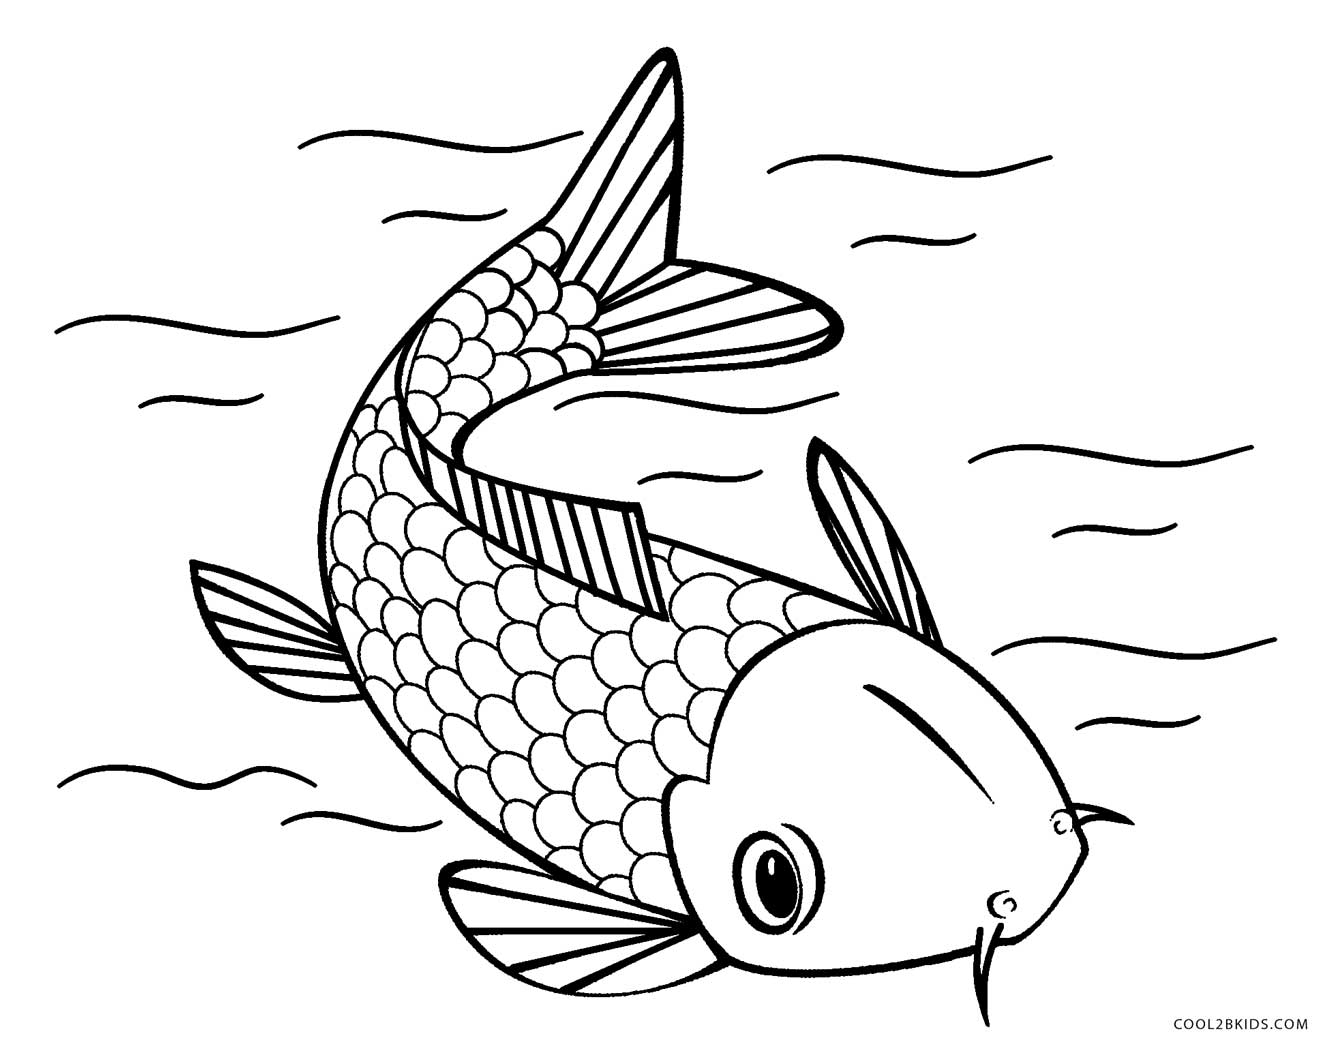 coloring fish pages fish coloring pages for kids preschool and kindergarten coloring pages fish